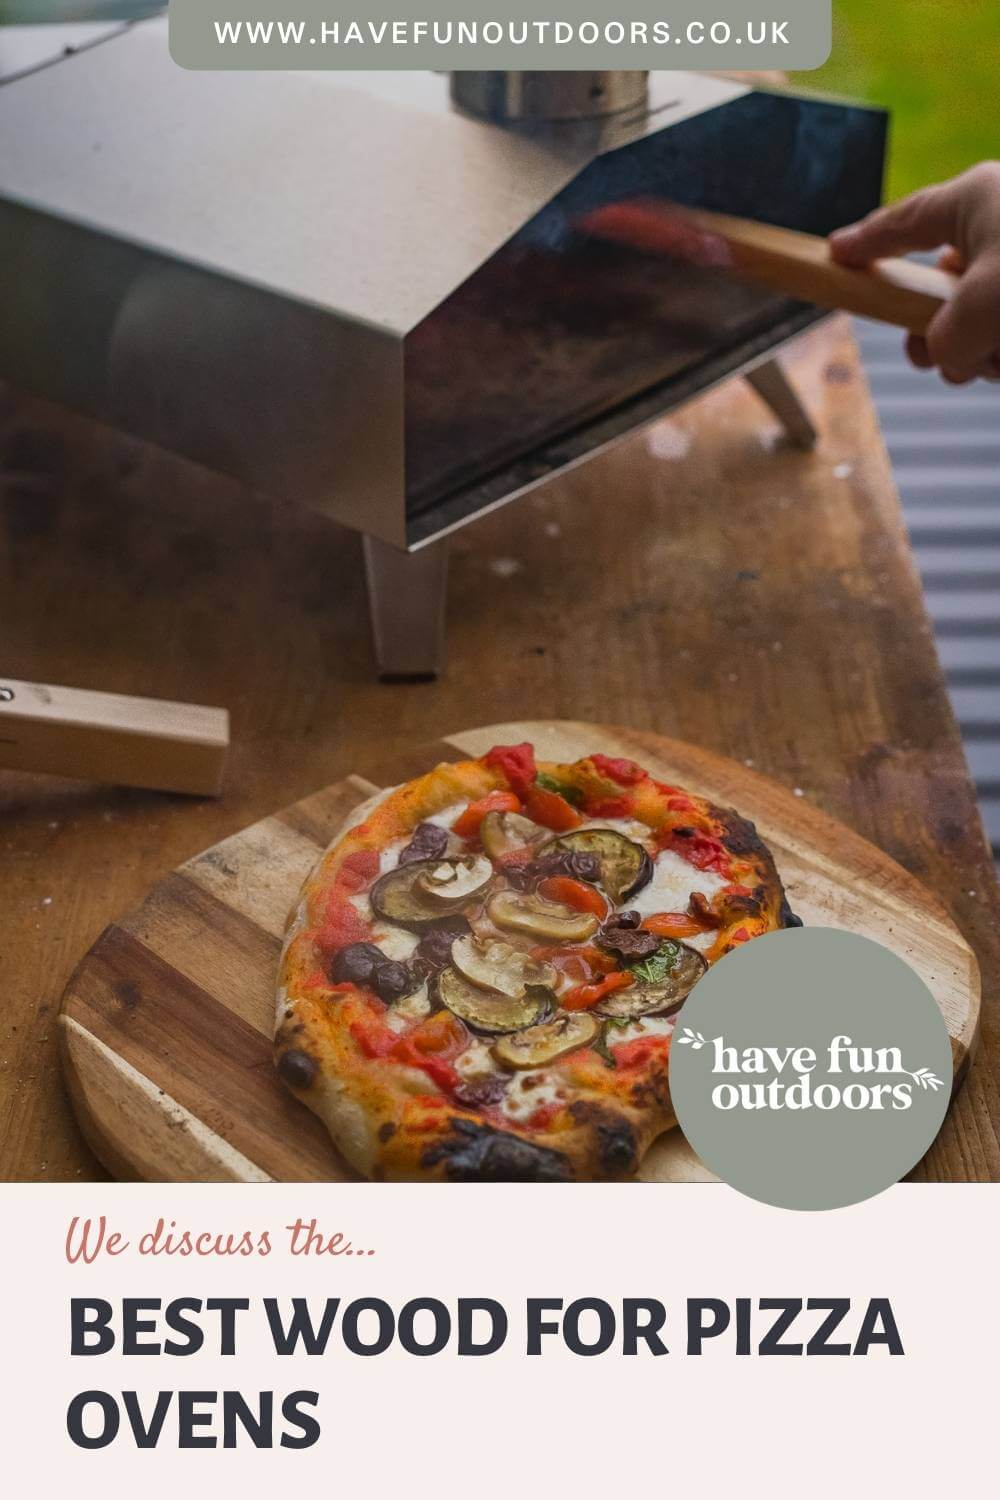 Best Wood For A Pizza Oven, What Wood Should You Use In A Pizza Oven?